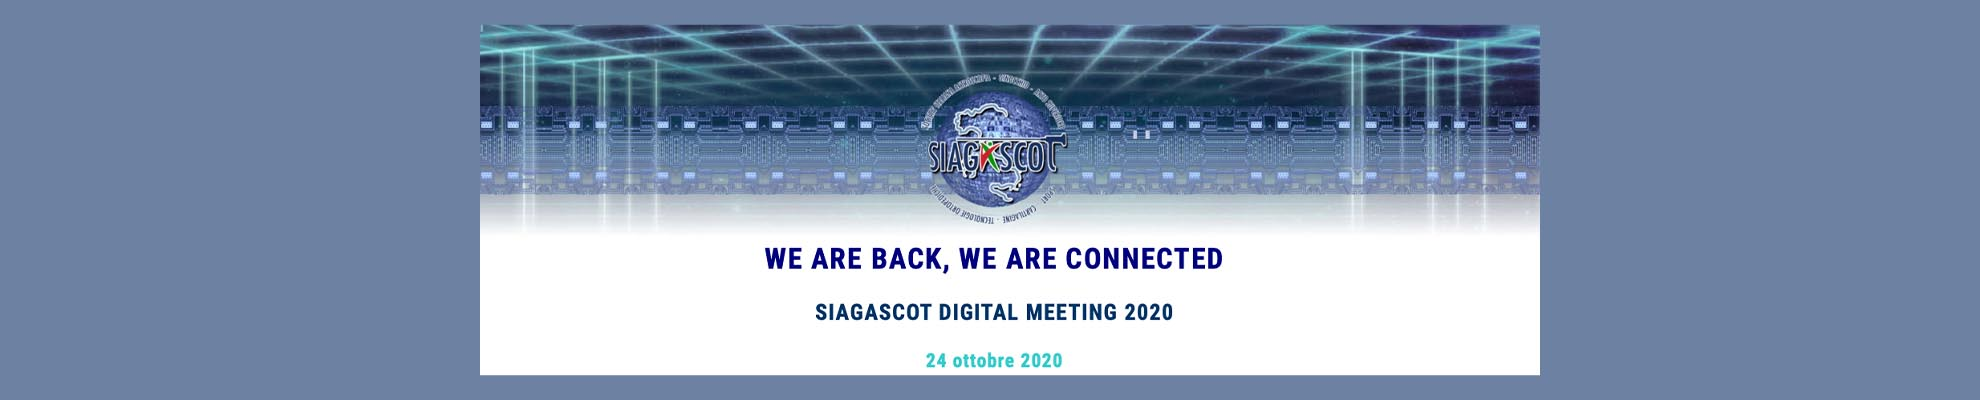 IBSA main sponsor D-Meeting SIAGASCOT